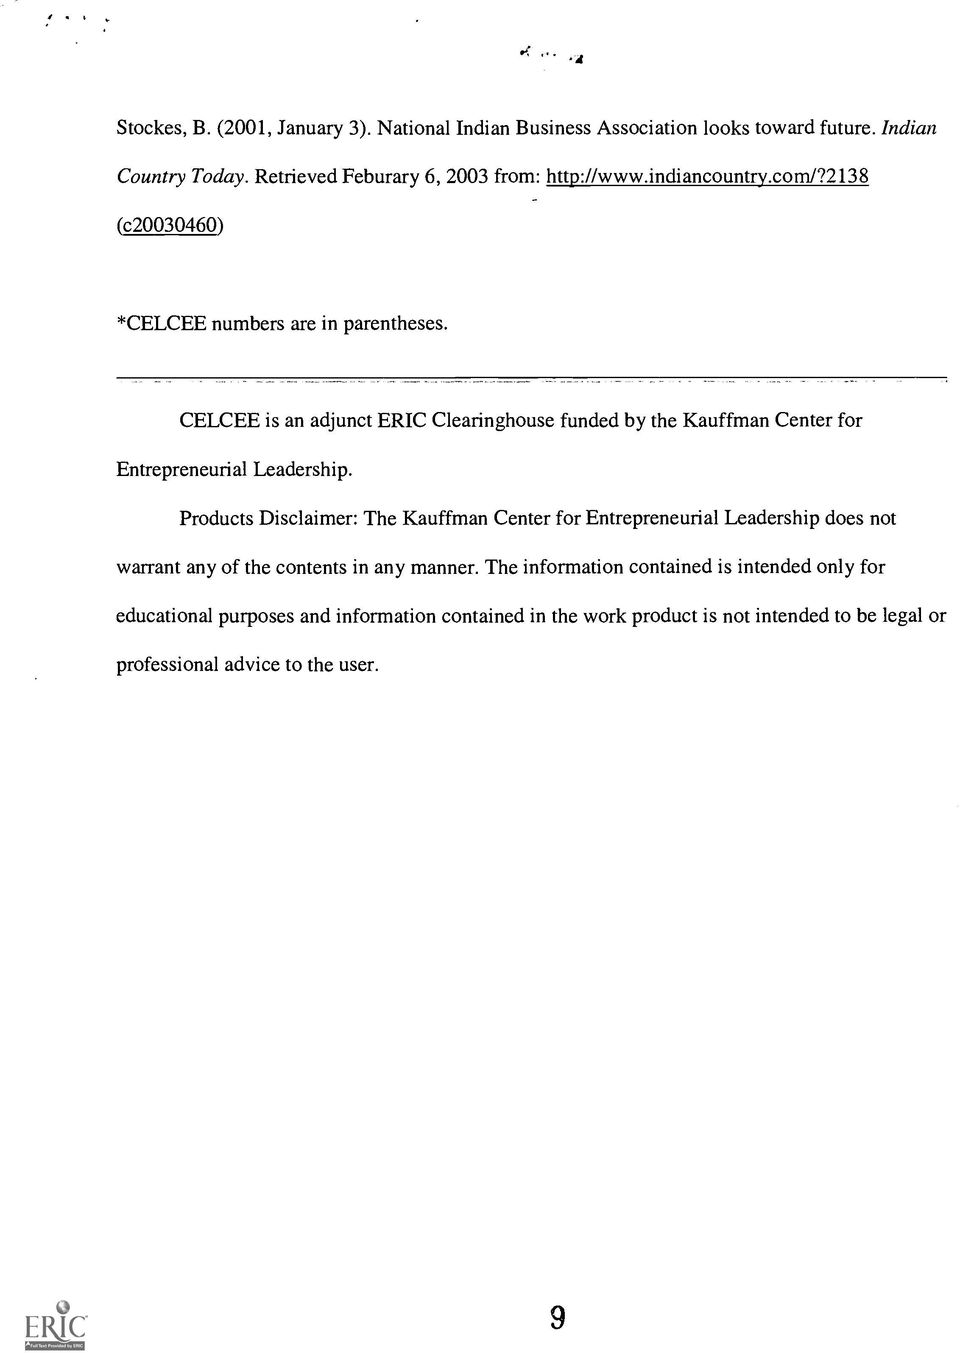 CELCEE is an adjunct ERIC Clearinghouse funded by the Kauffman Center for Entrepreneurial Leadership.